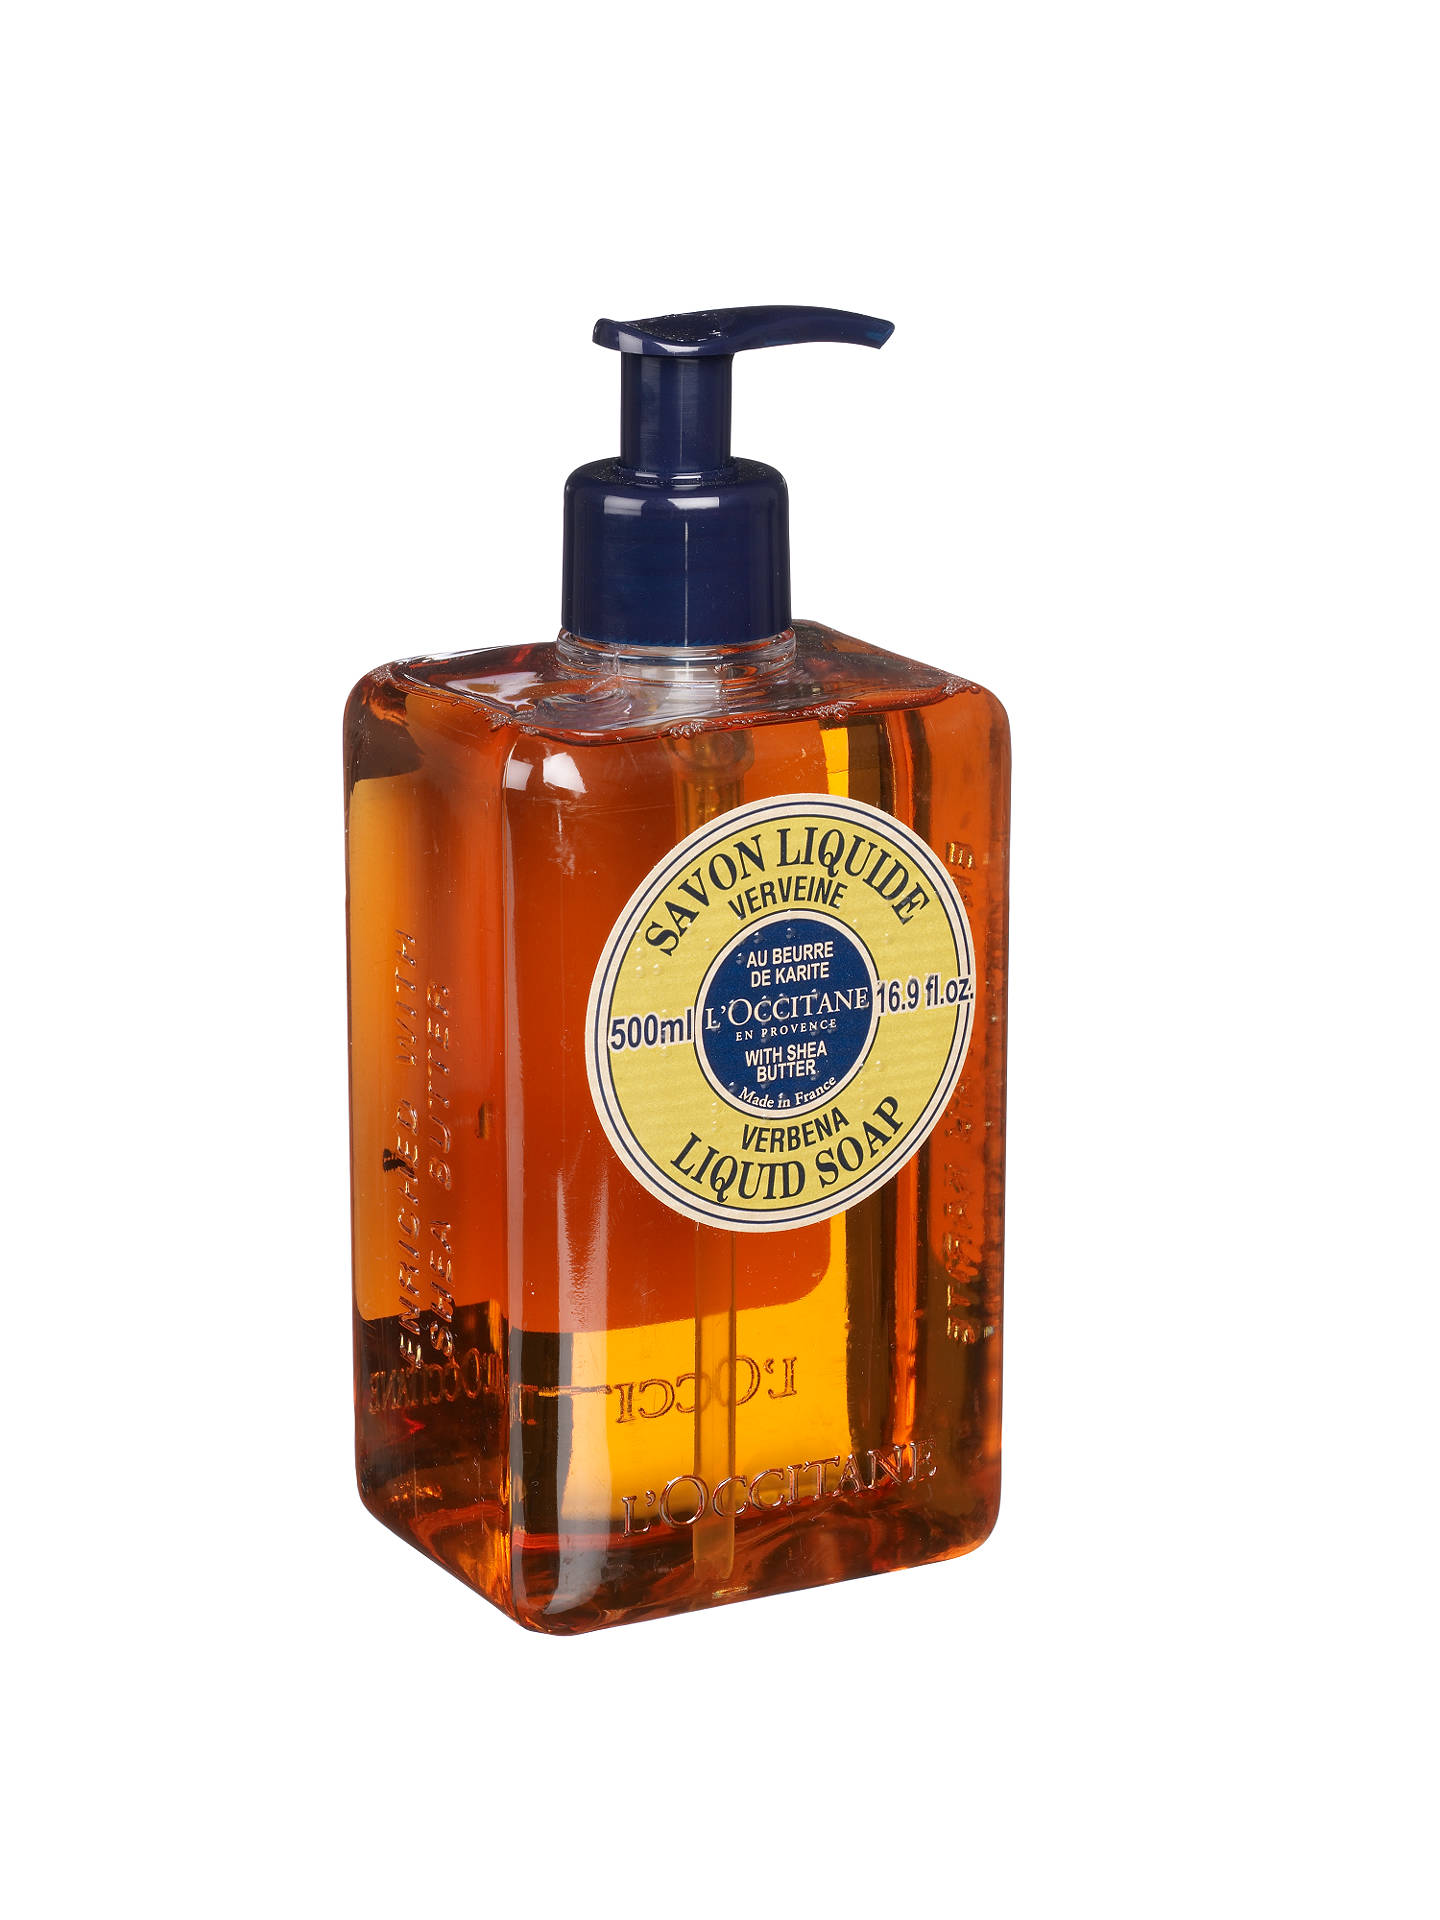 BuyL'Occitane Verbena Liquid Soap, 500ml Online at johnlewis.com